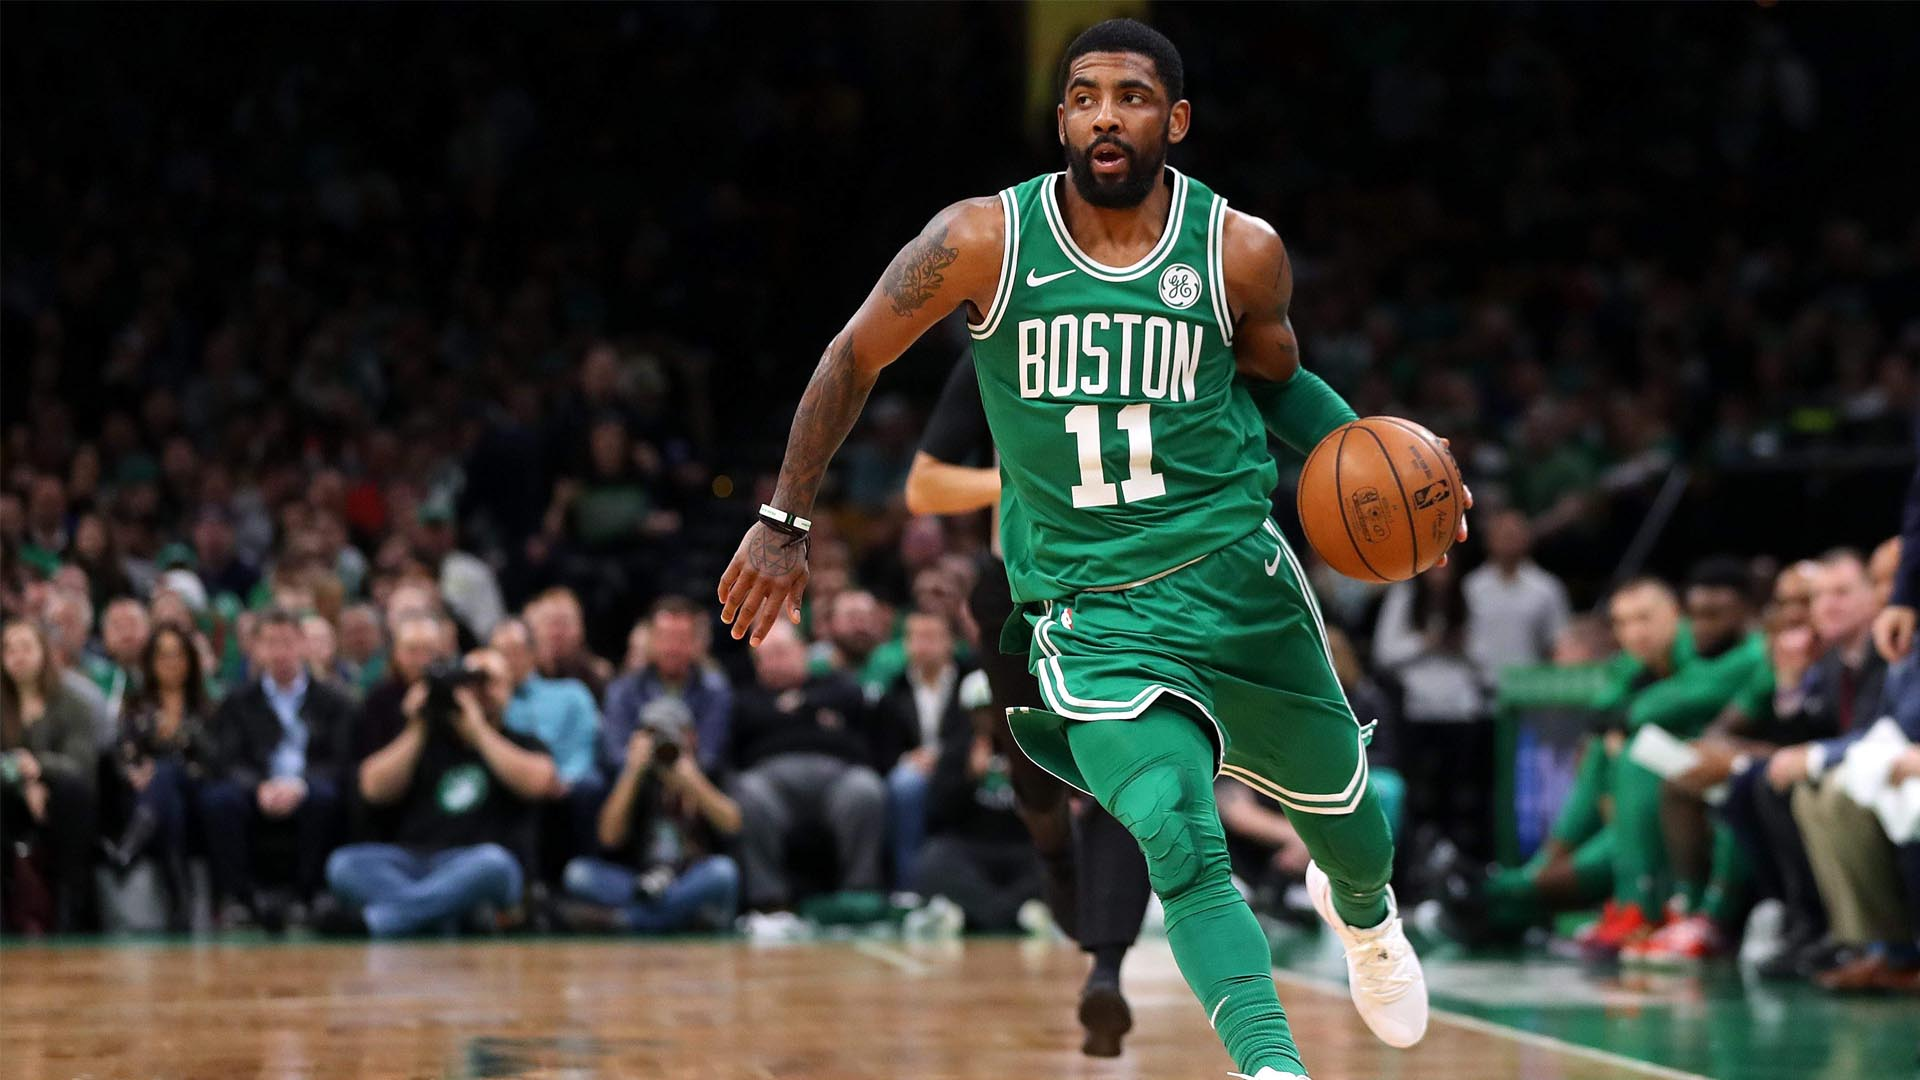 Purchase Kyrie Irving NBA Jerseys From Nike Through Lemoney